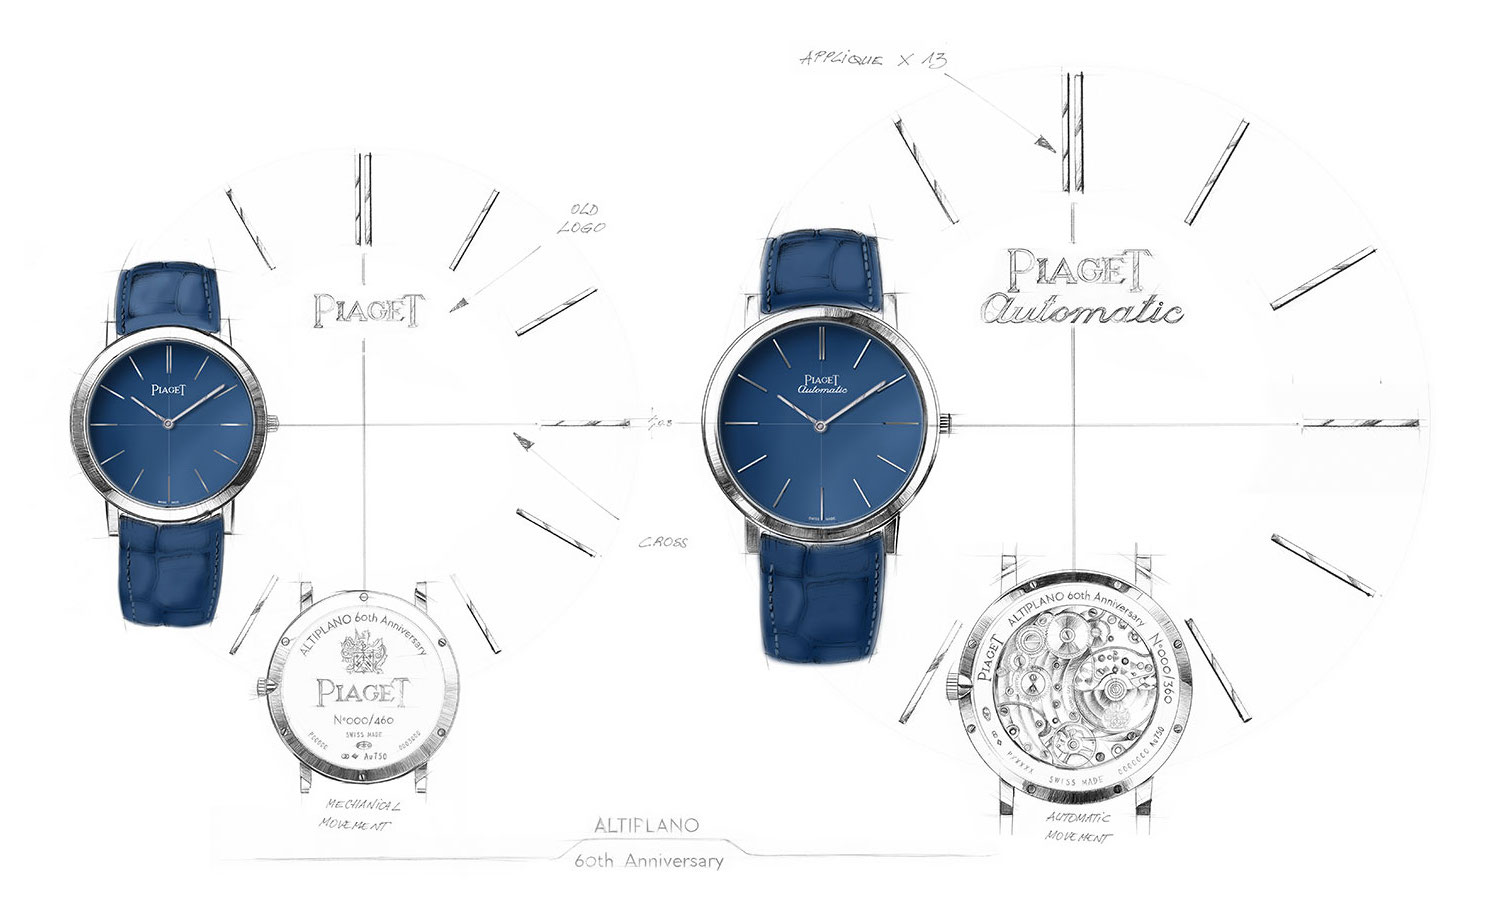 Piaget Altiplano 60th anniversary collection - Pre-SIHH 2017